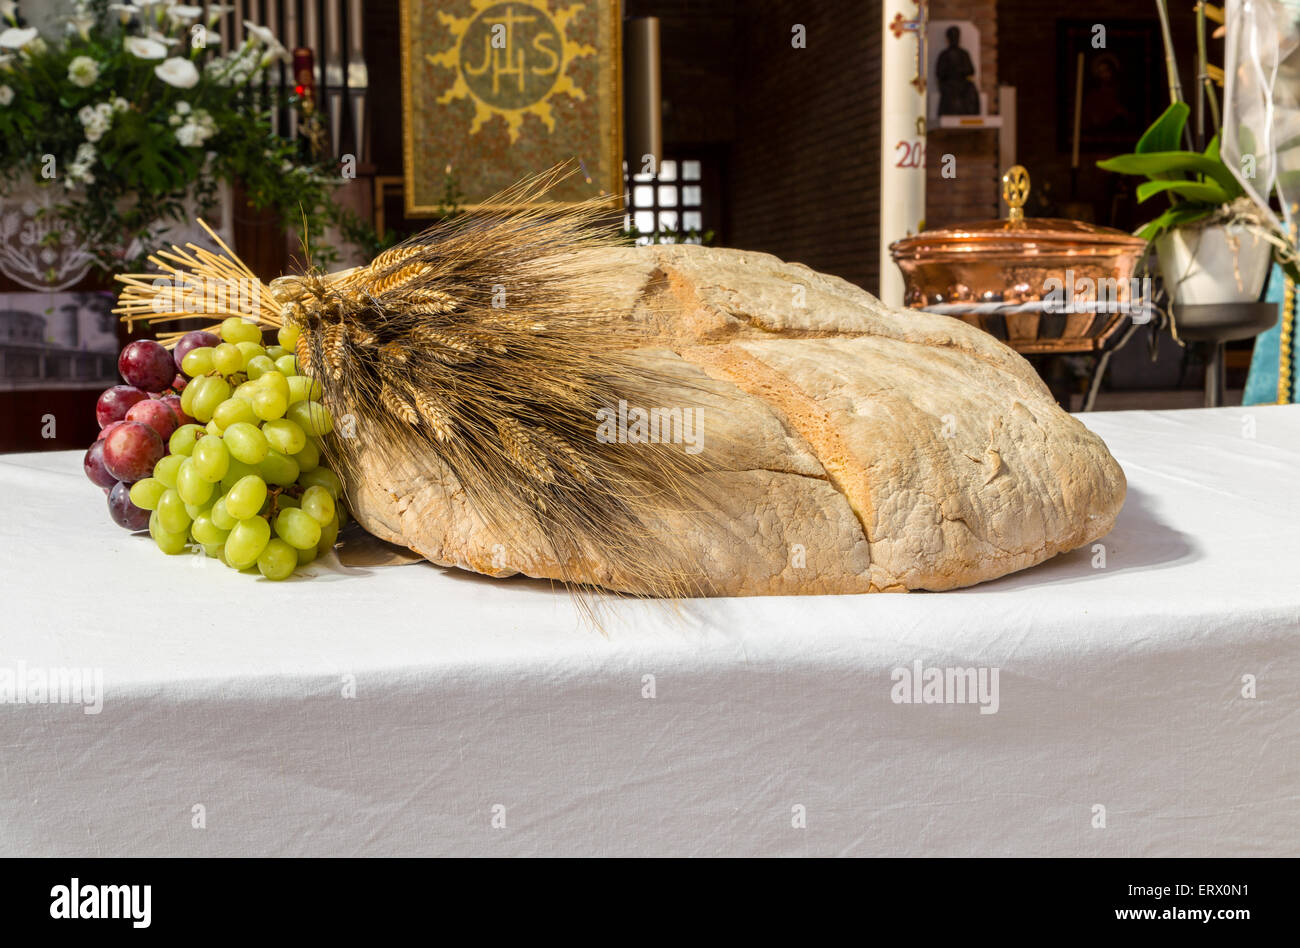 Bread grapes and wheat as a symbol of christian communion in a bread grapes and wheat as a symbol of christian communion in a catholic church buycottarizona Choice Image